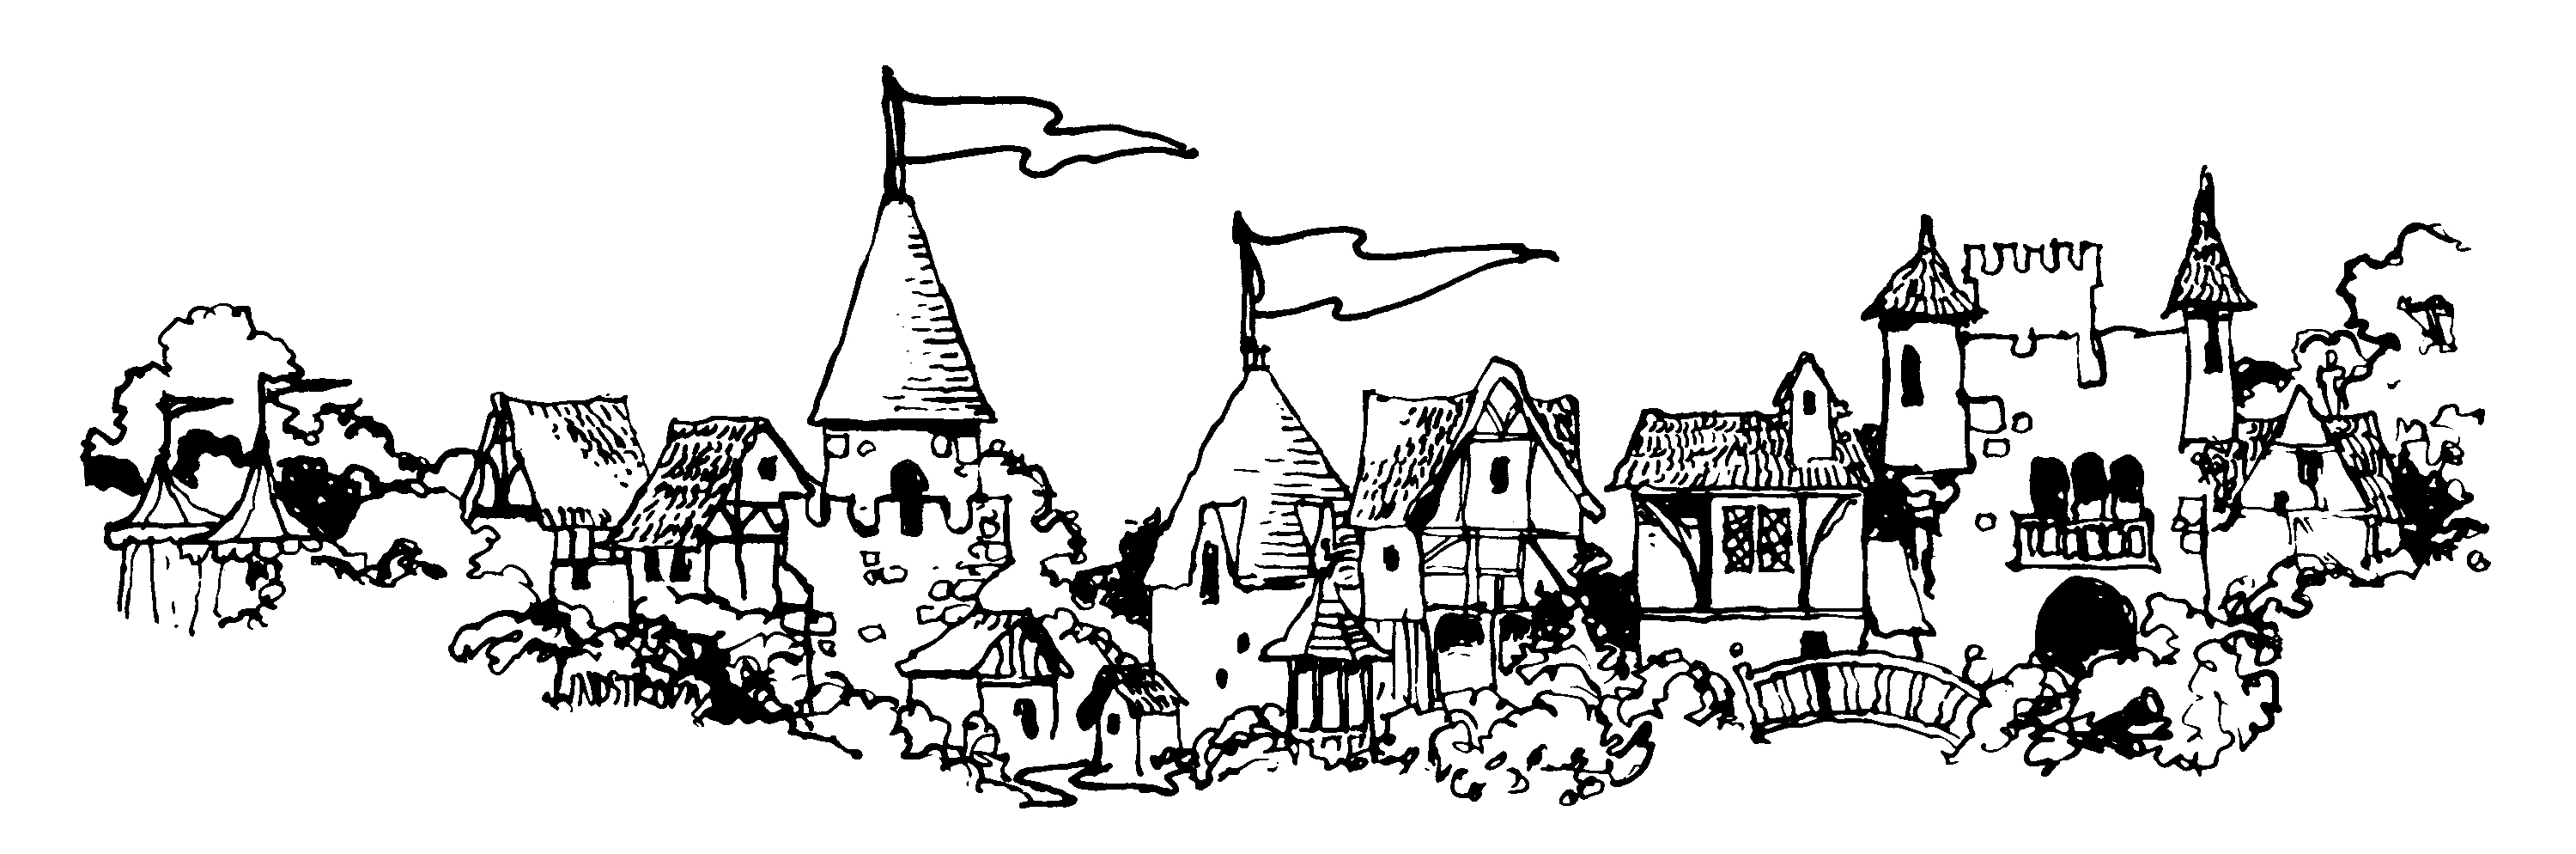 Village clipart #5, Download drawings